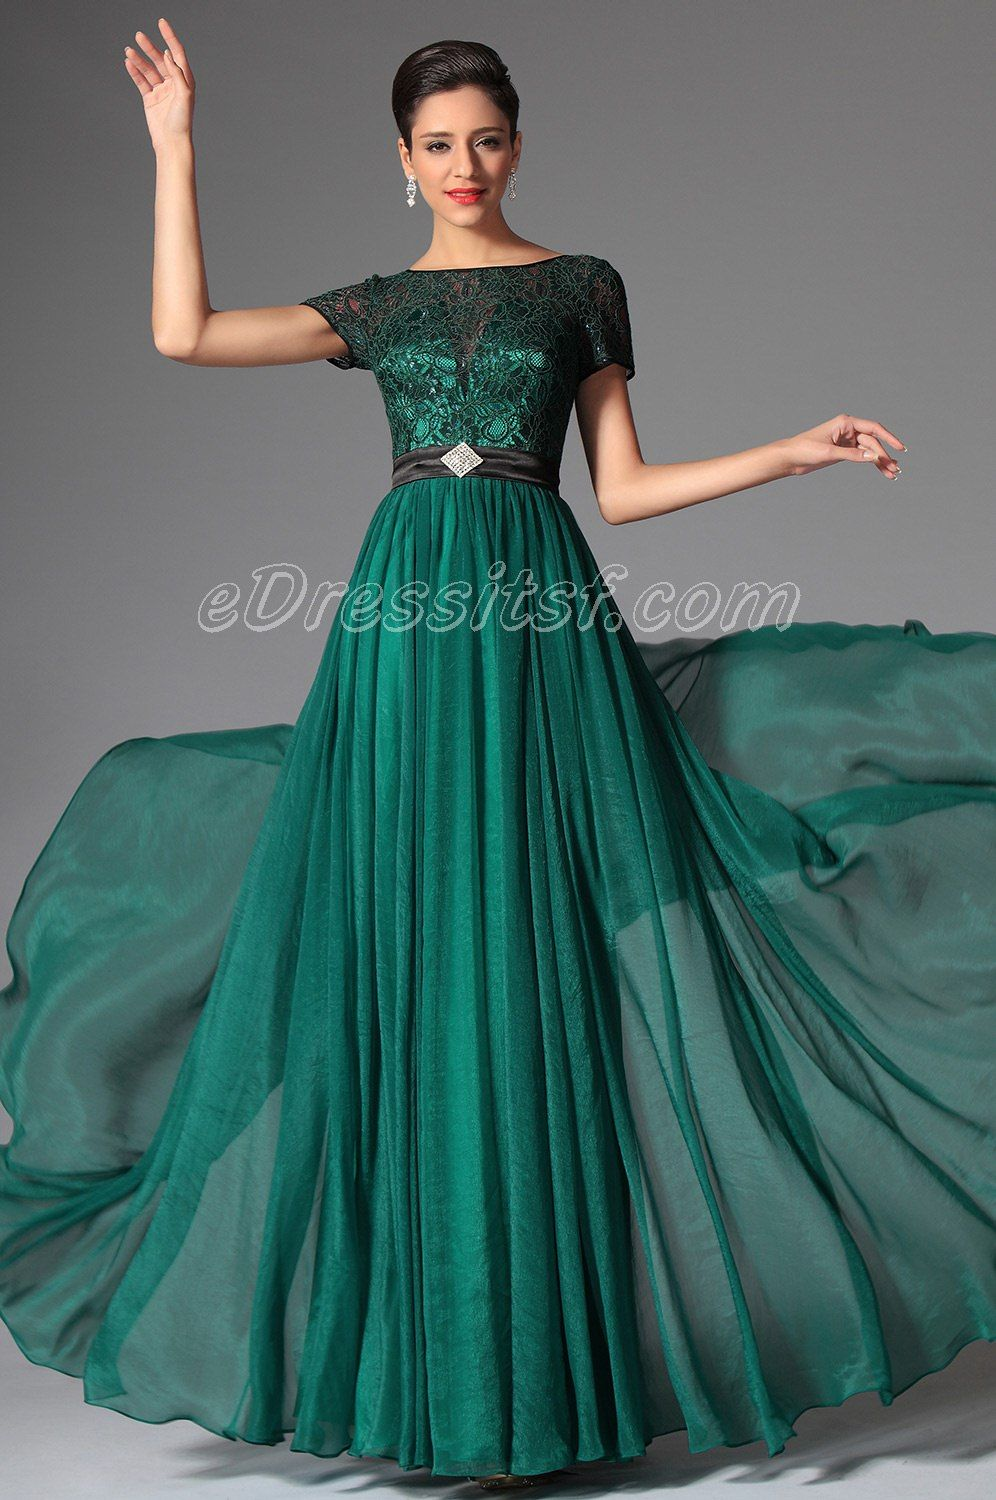 New dark green short sleeves evening dress prom dress wedding